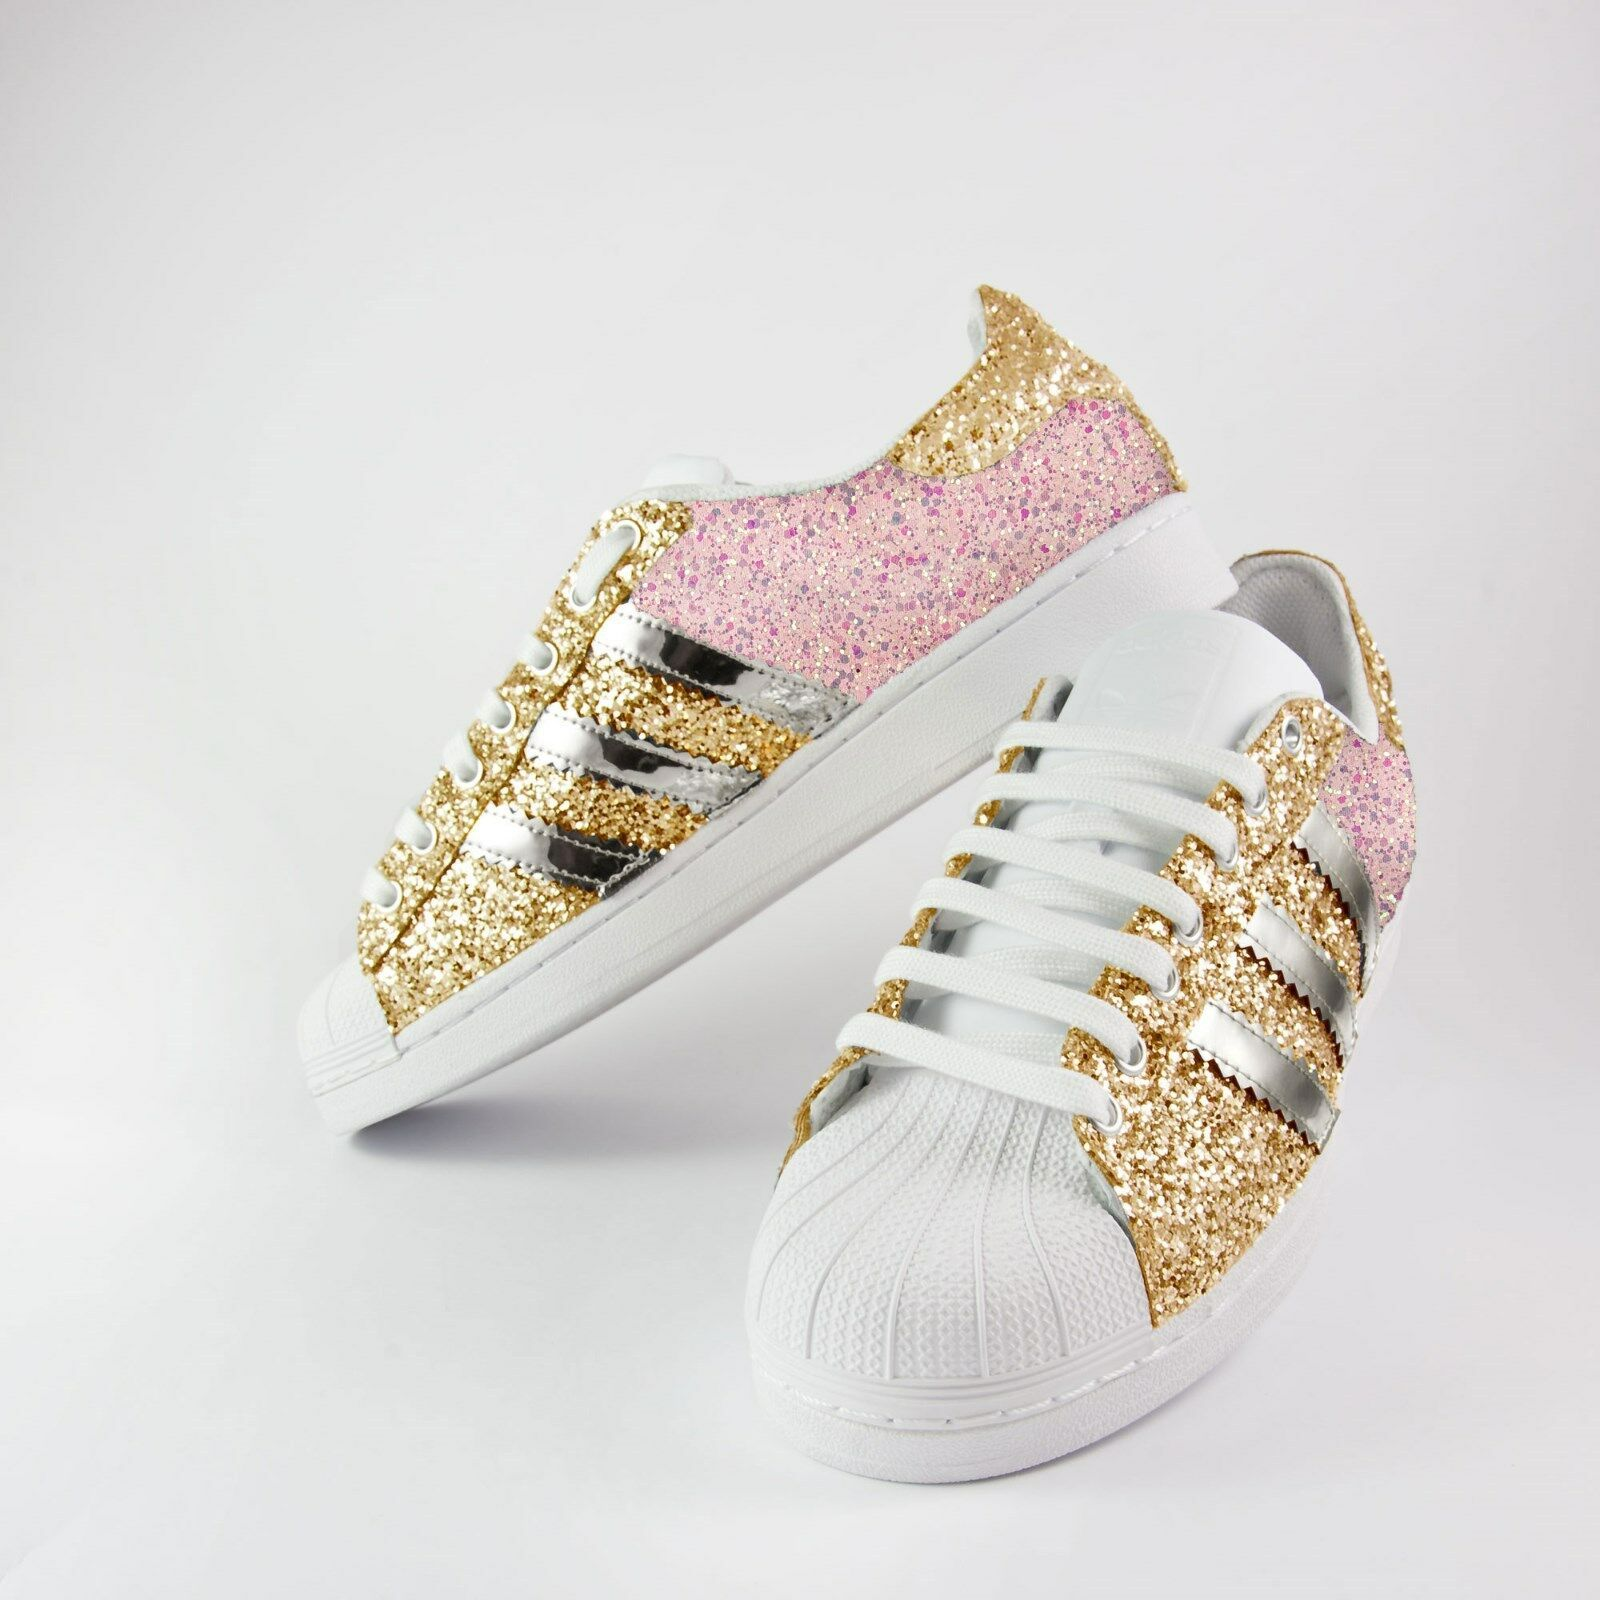 Zapatos Adidas Superstar con Purpurina Rosa + Oro Brillo Piu